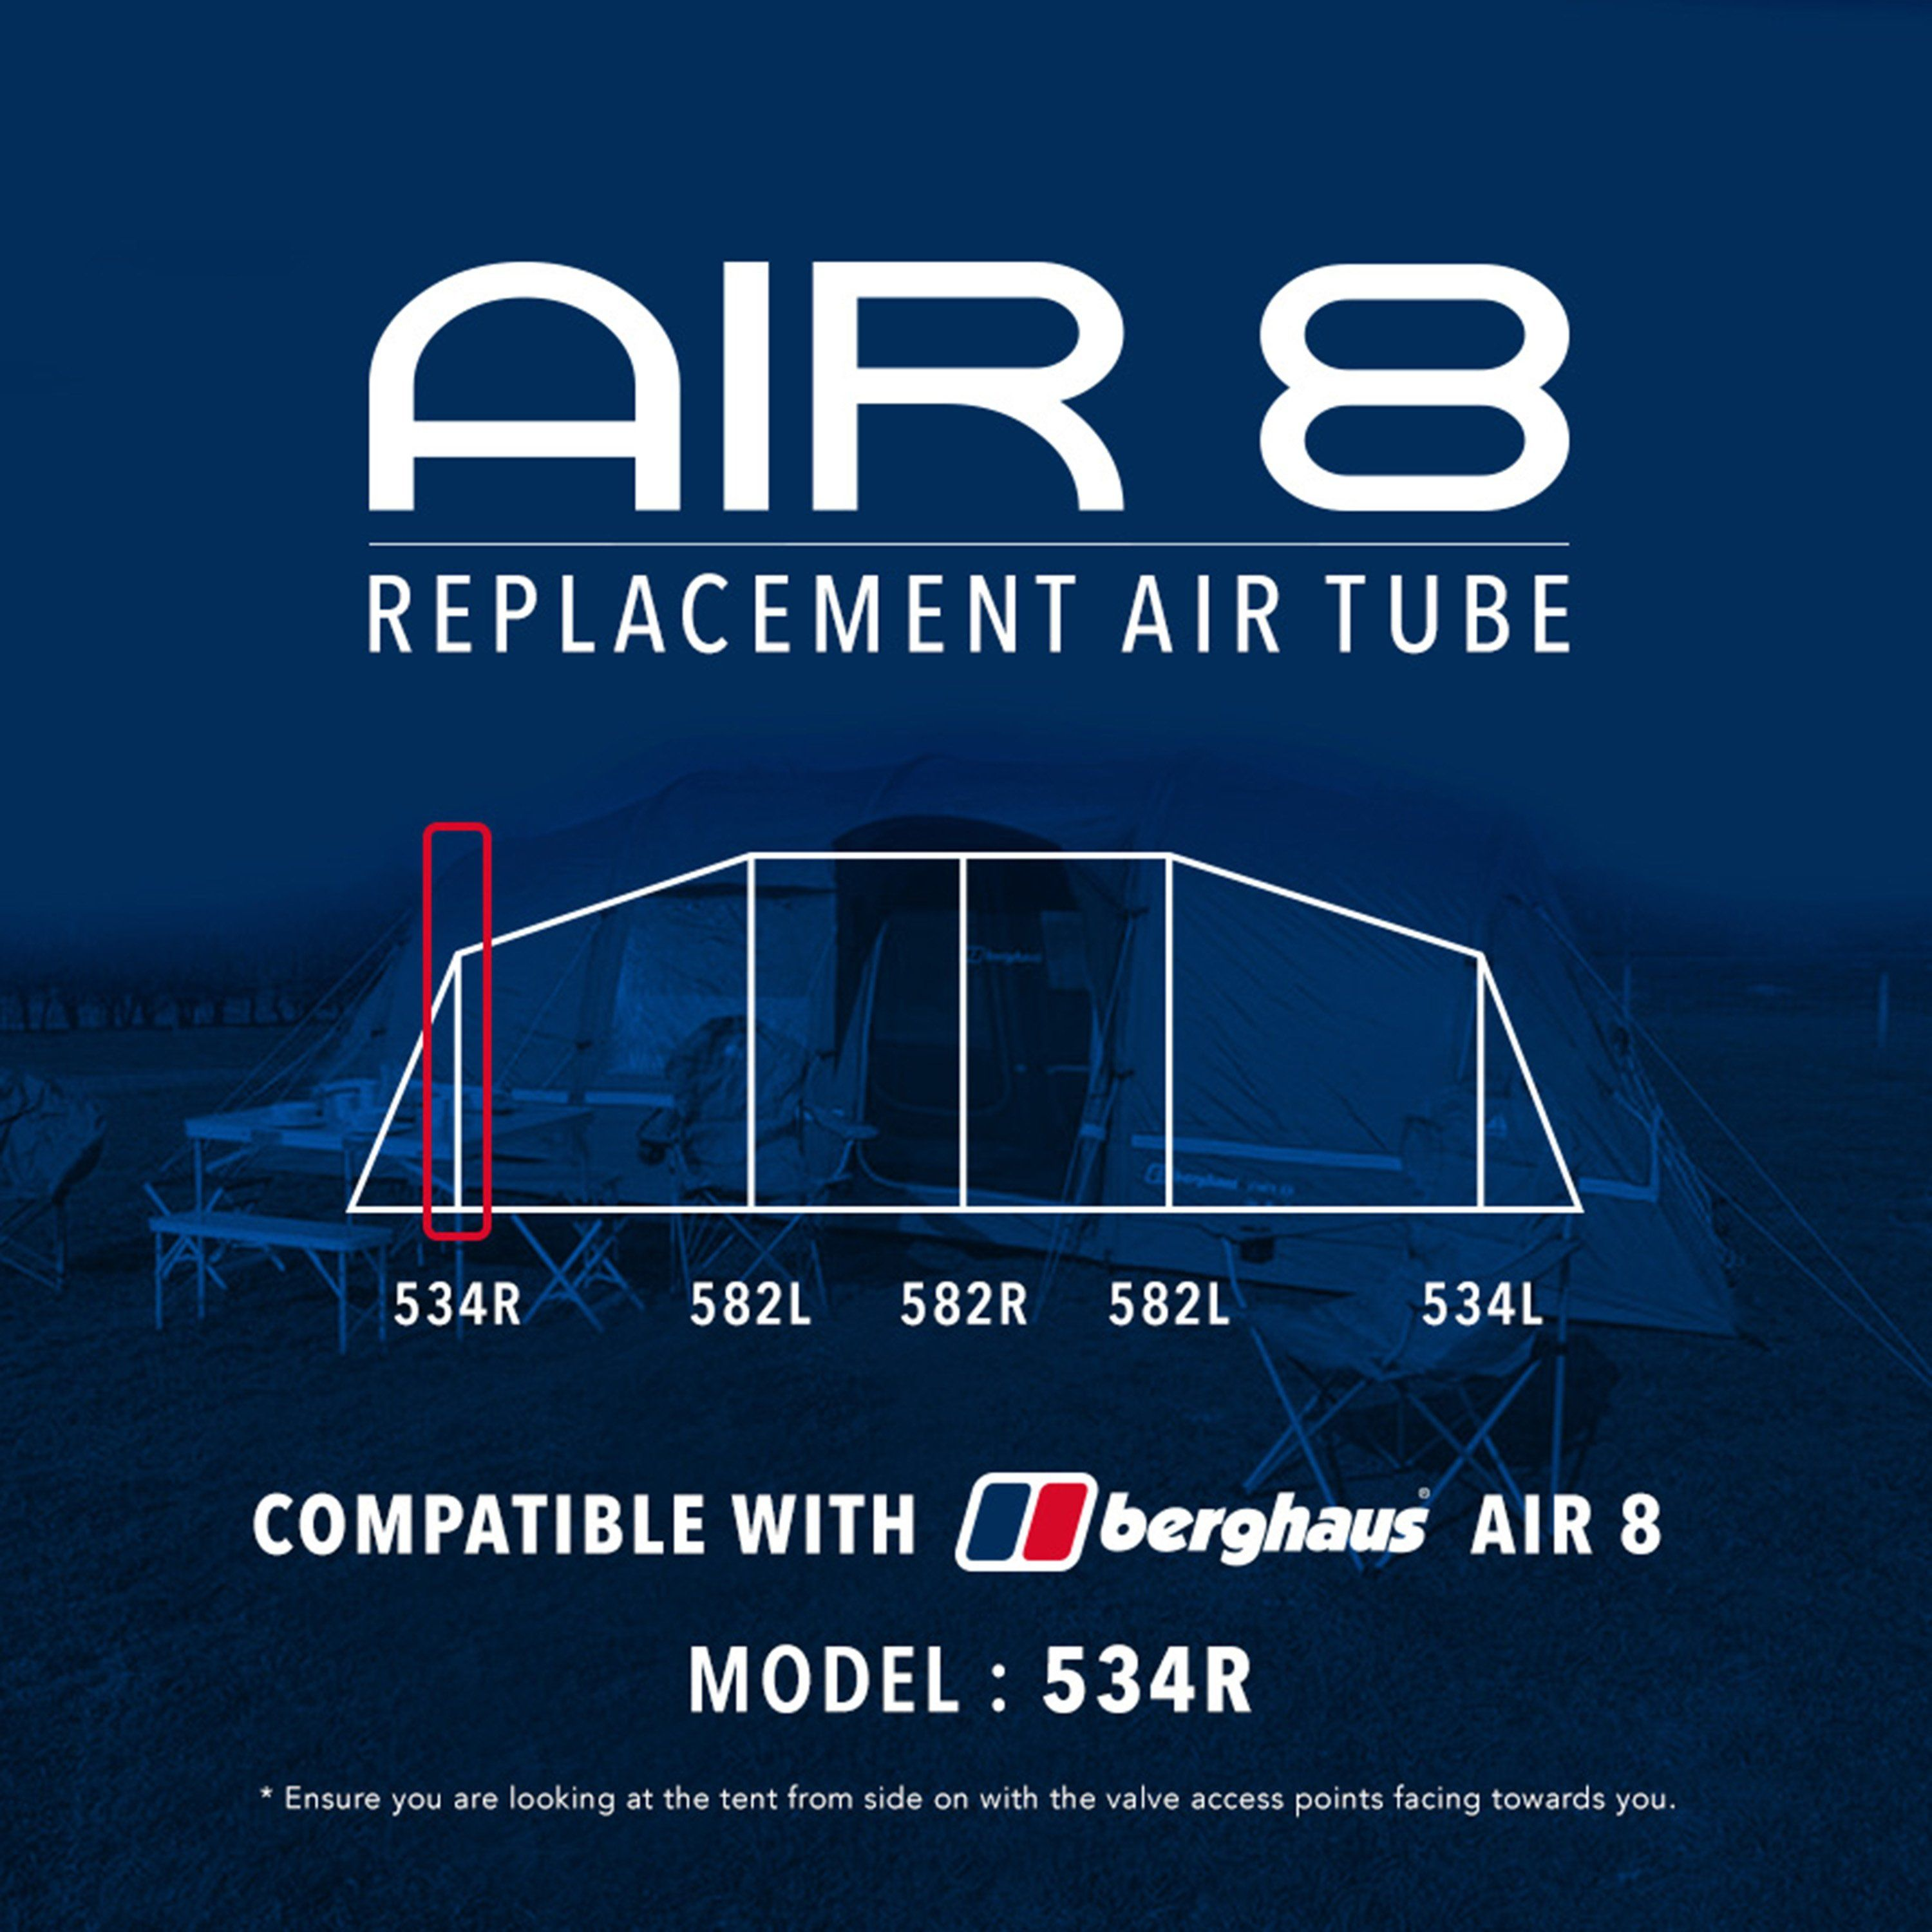 EUROHIKE Air 8 Tent Replacement Air Tube - 534R